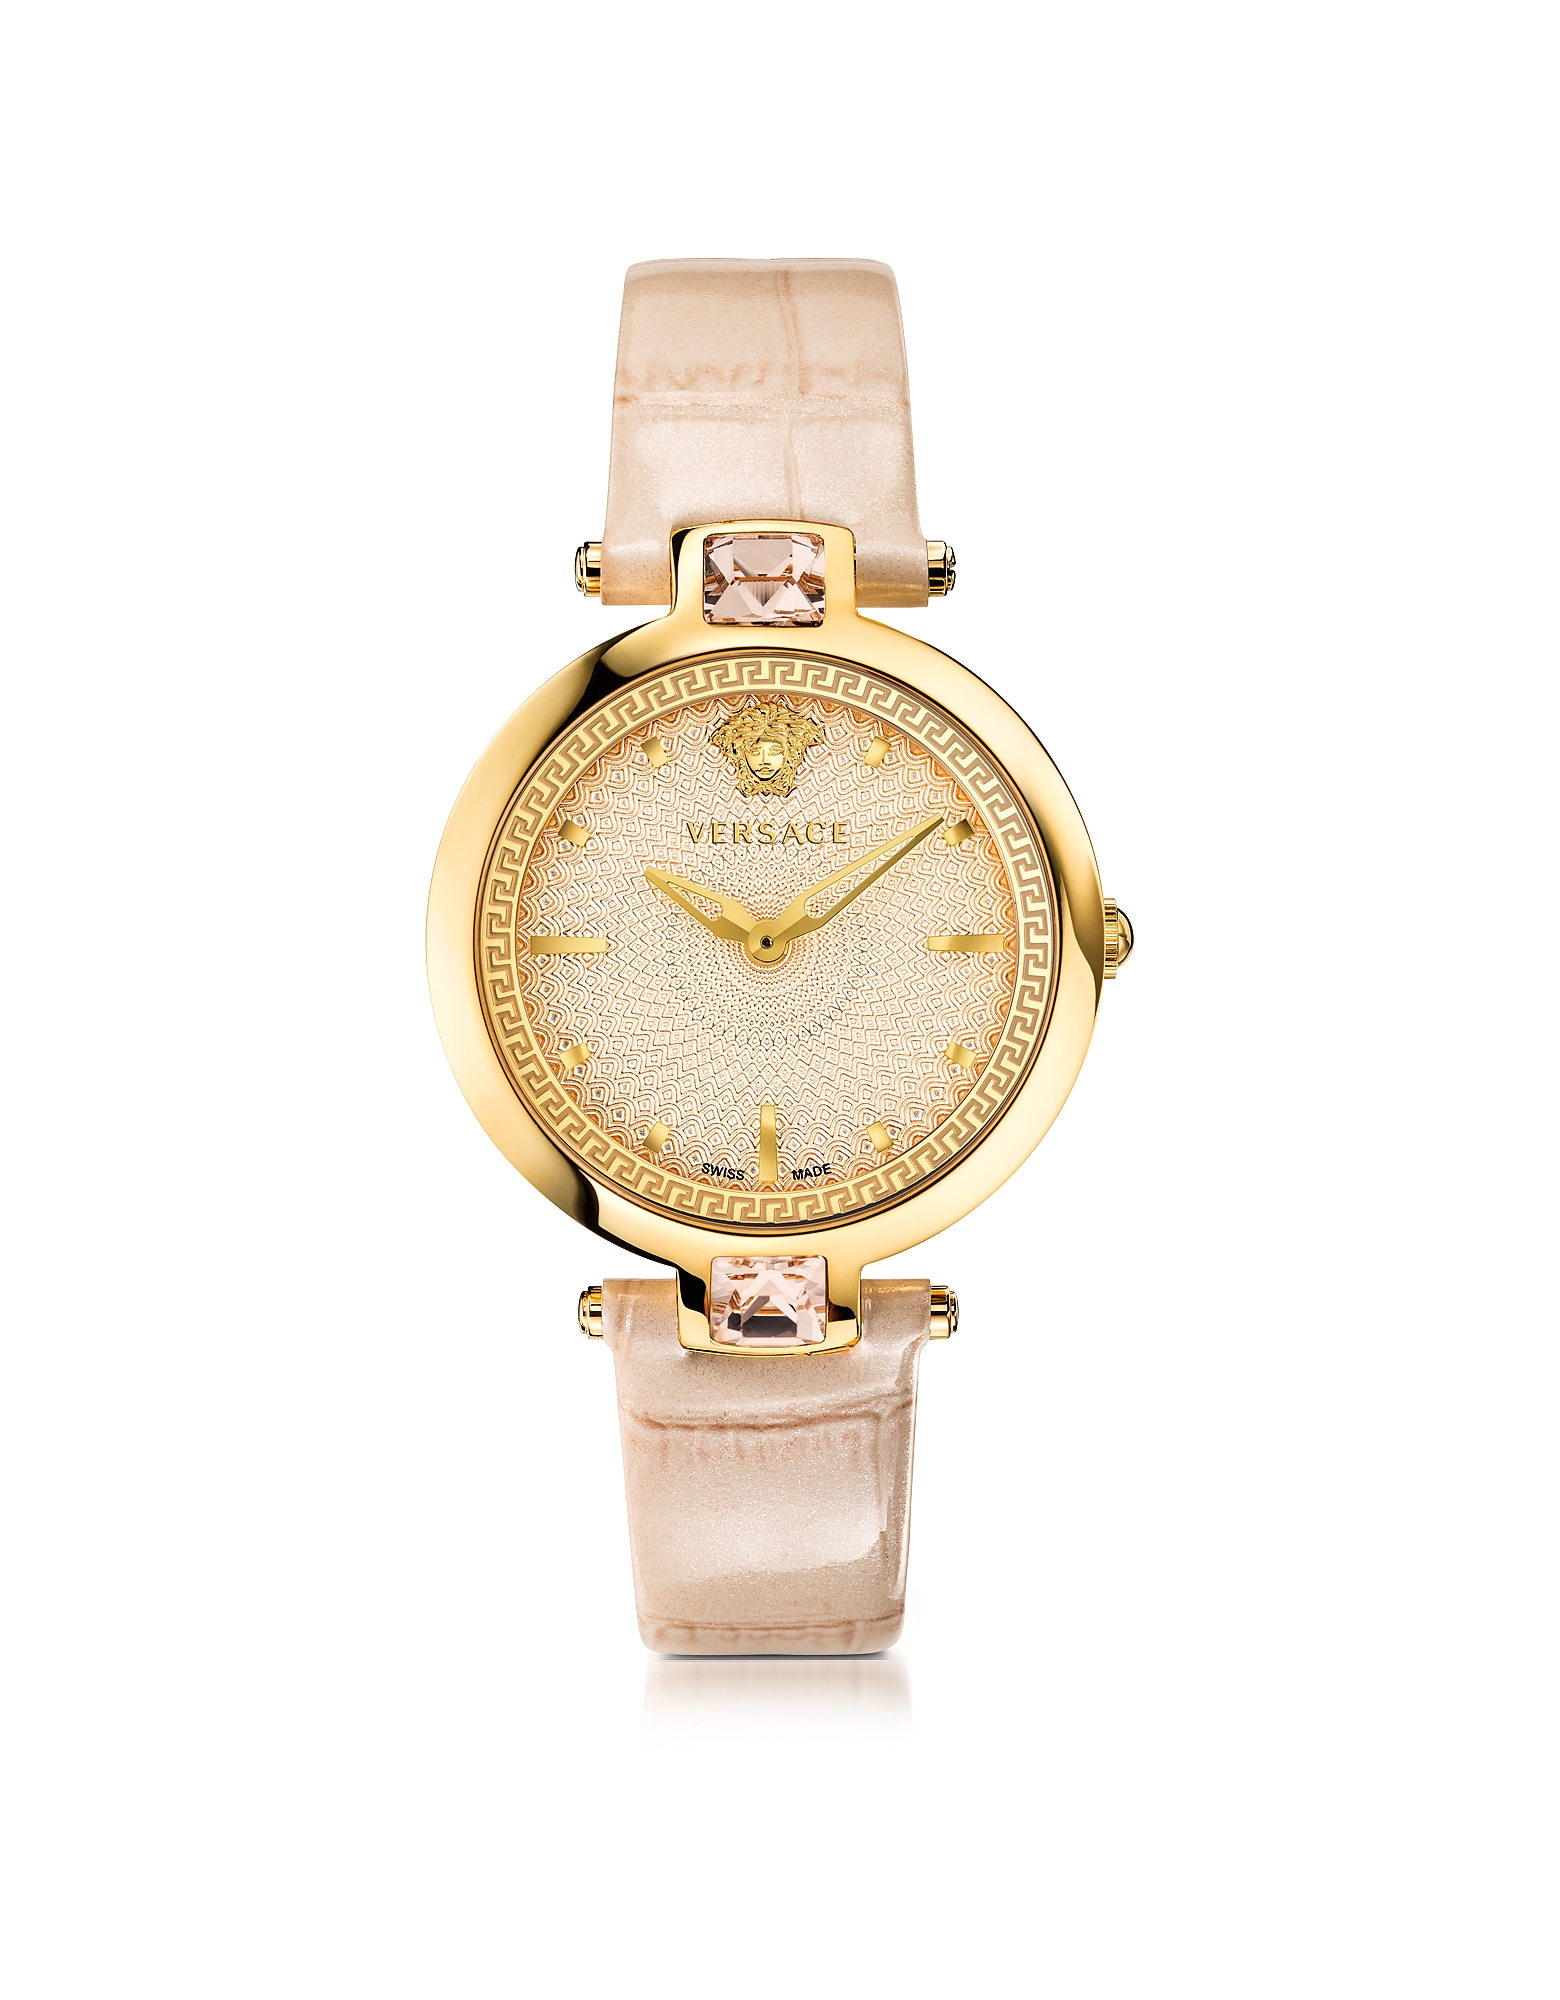 Versace Women's Watches, Crystal Gleam Ivory Women's Watch w/Guilloché Dial and Croco Embossed Band